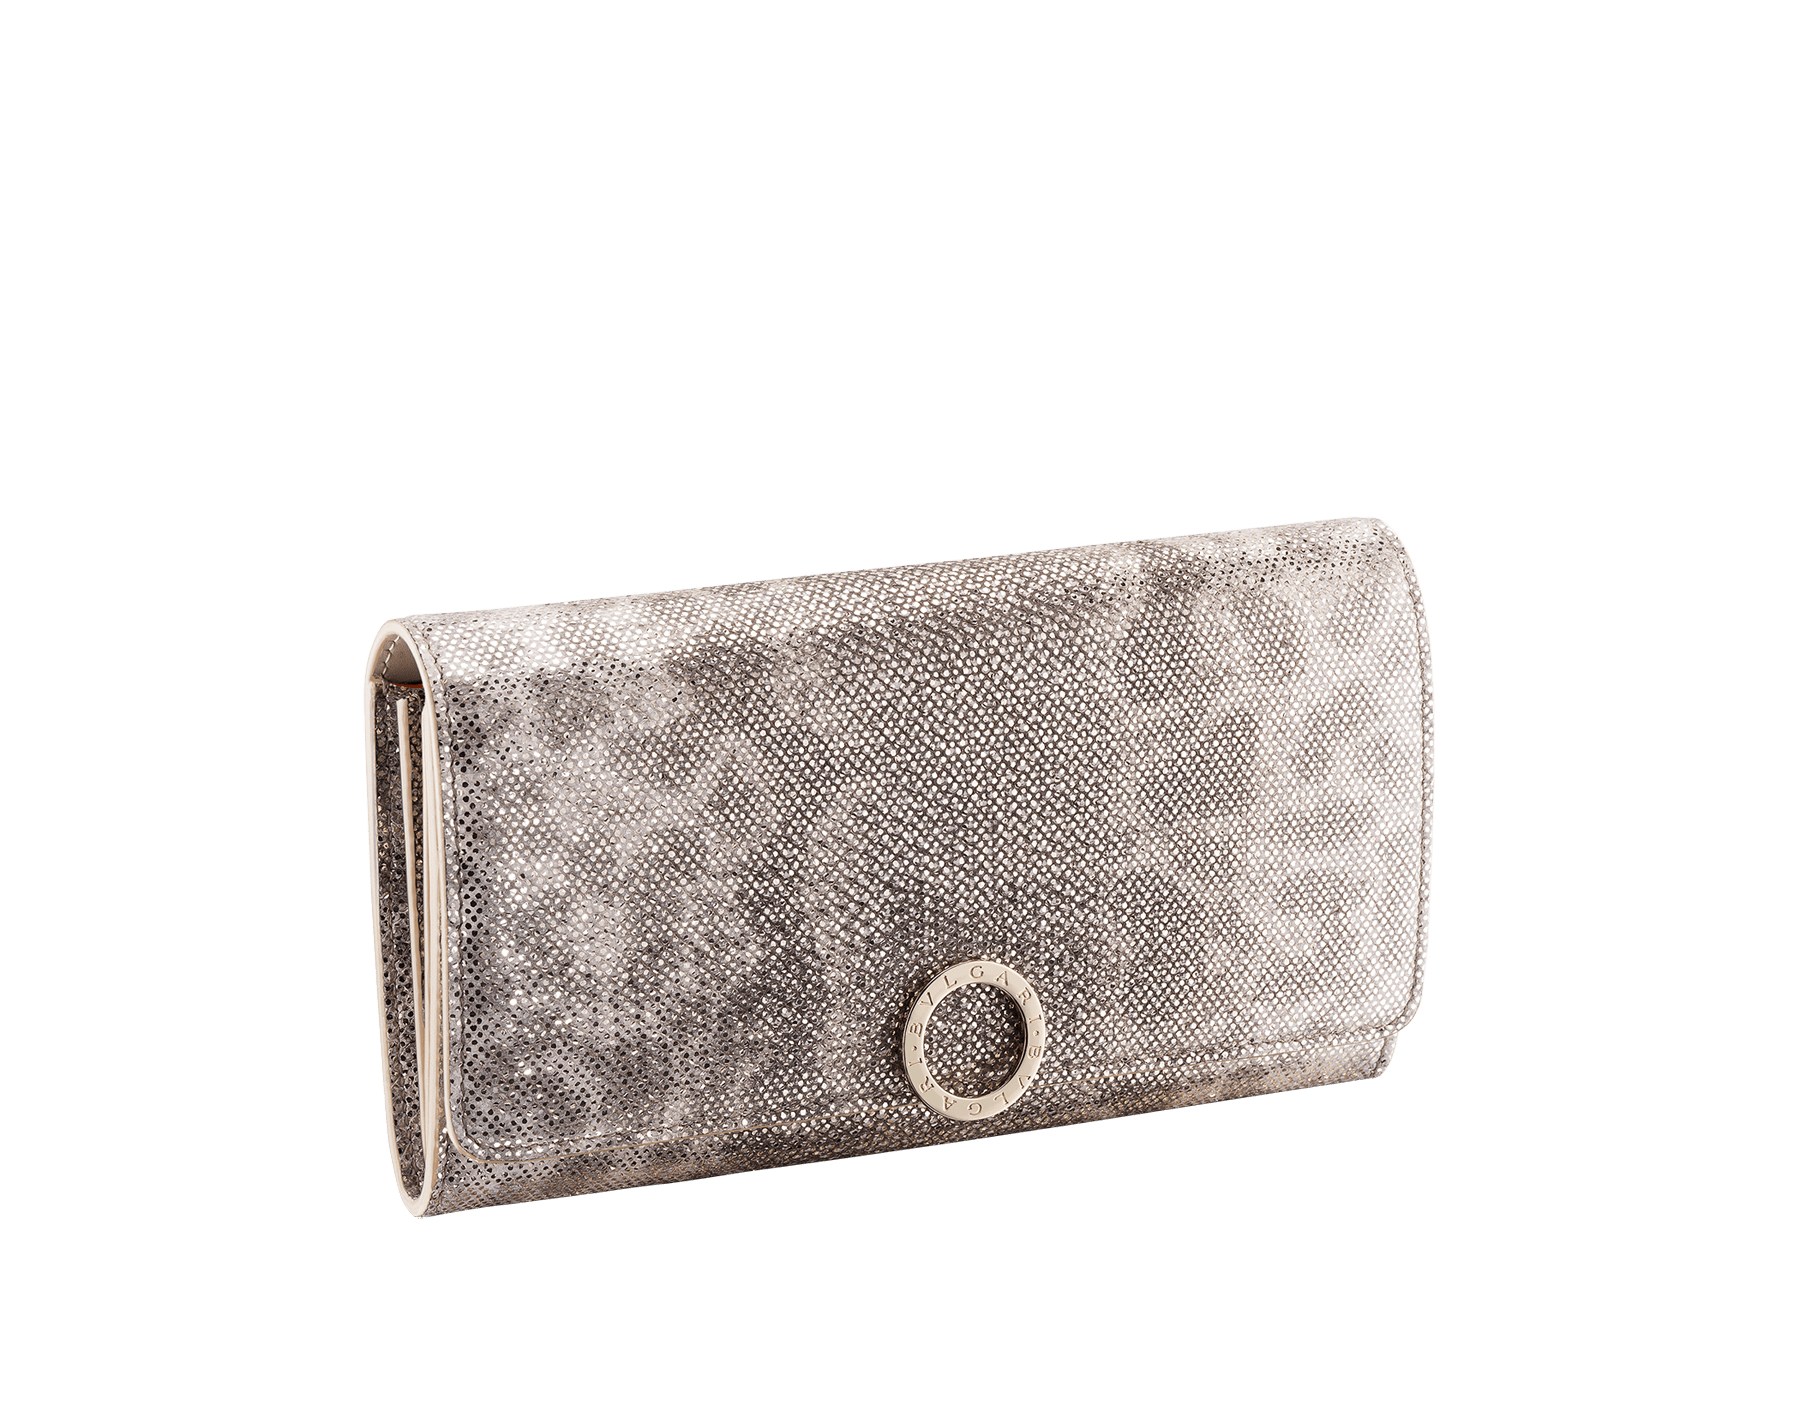 """BVLGARI BVLGARI"" large wallet in metallic Midnight Sapphire blue karung skin and black calfskin. Iconic logo clip closure in light gold-plated brass. 579-WLT-POCHE-16CC-MK image 1"